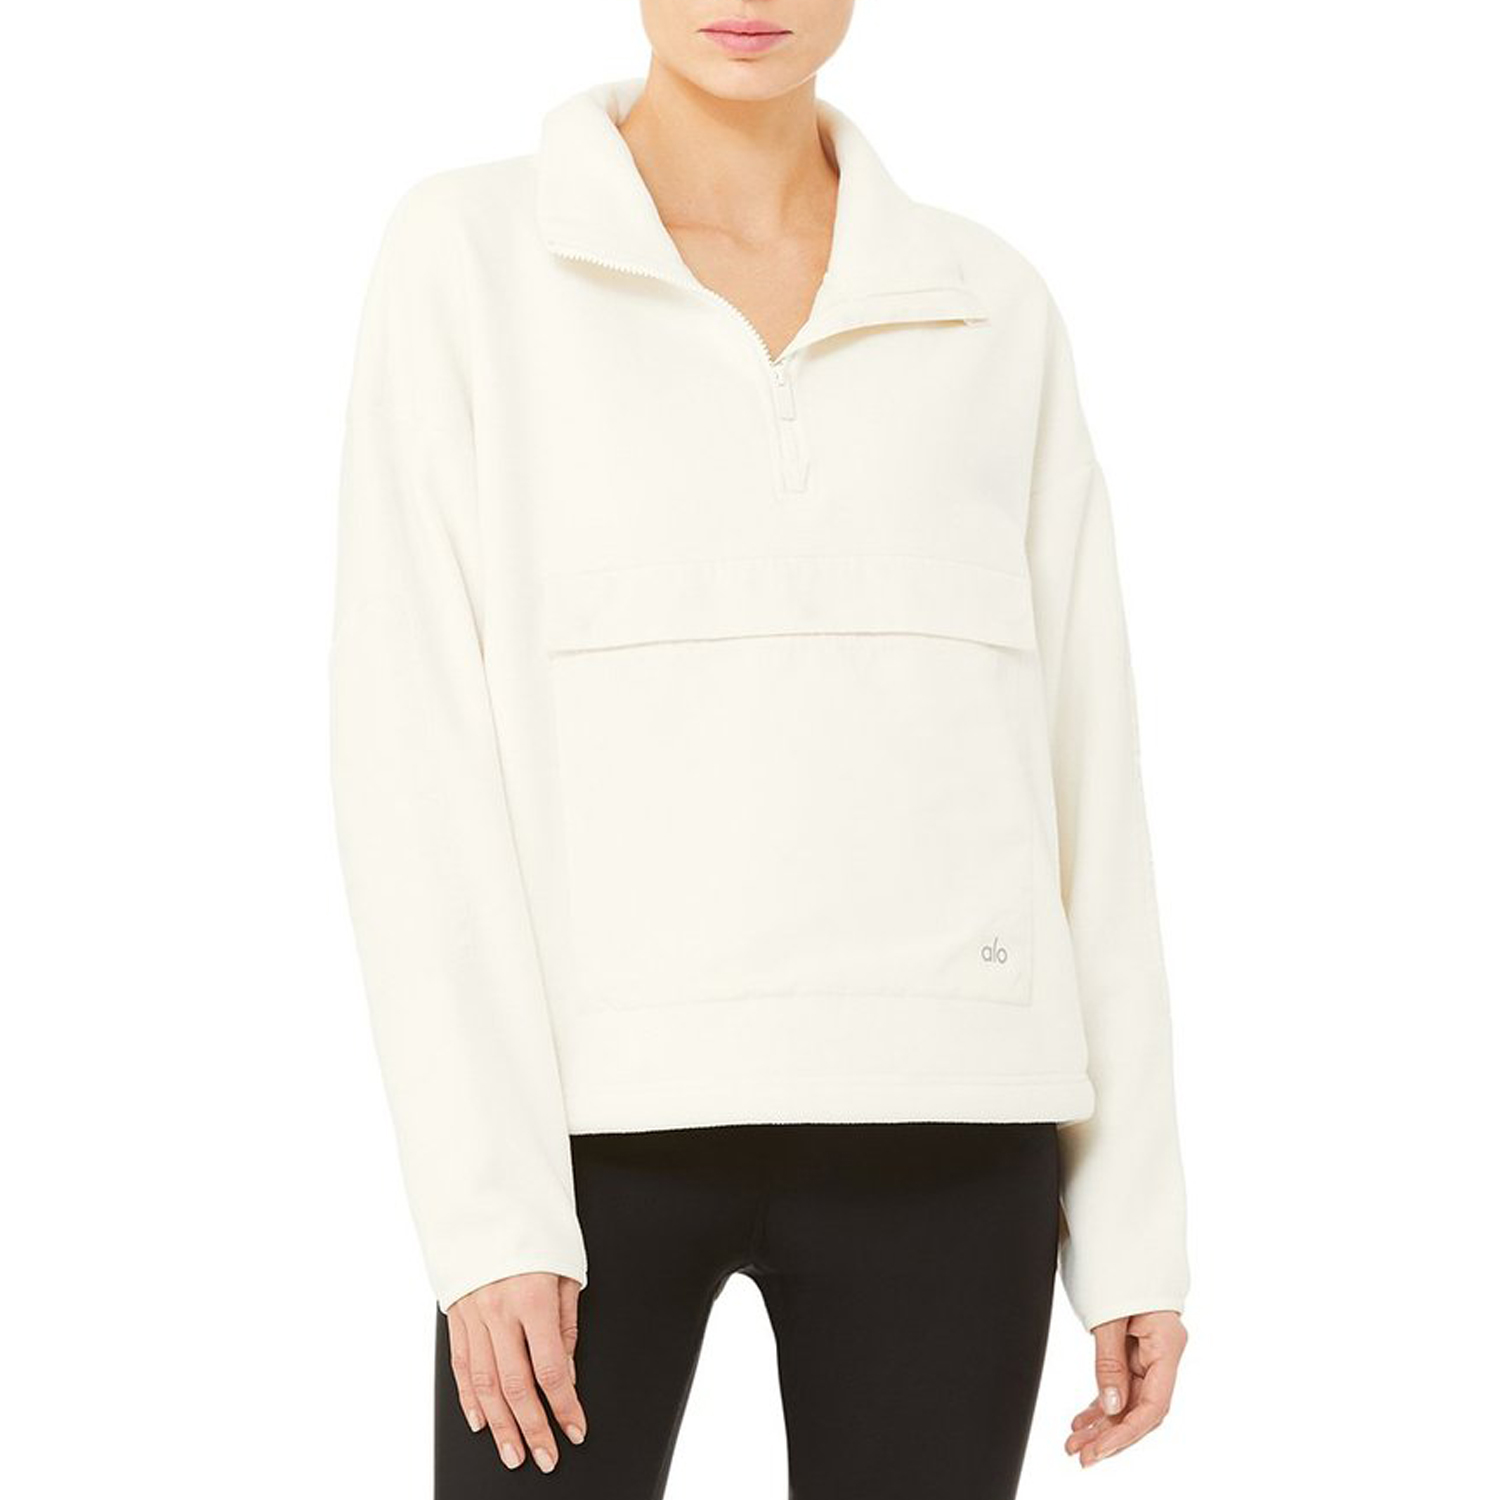 Alo Yoga Blackcomb pullover